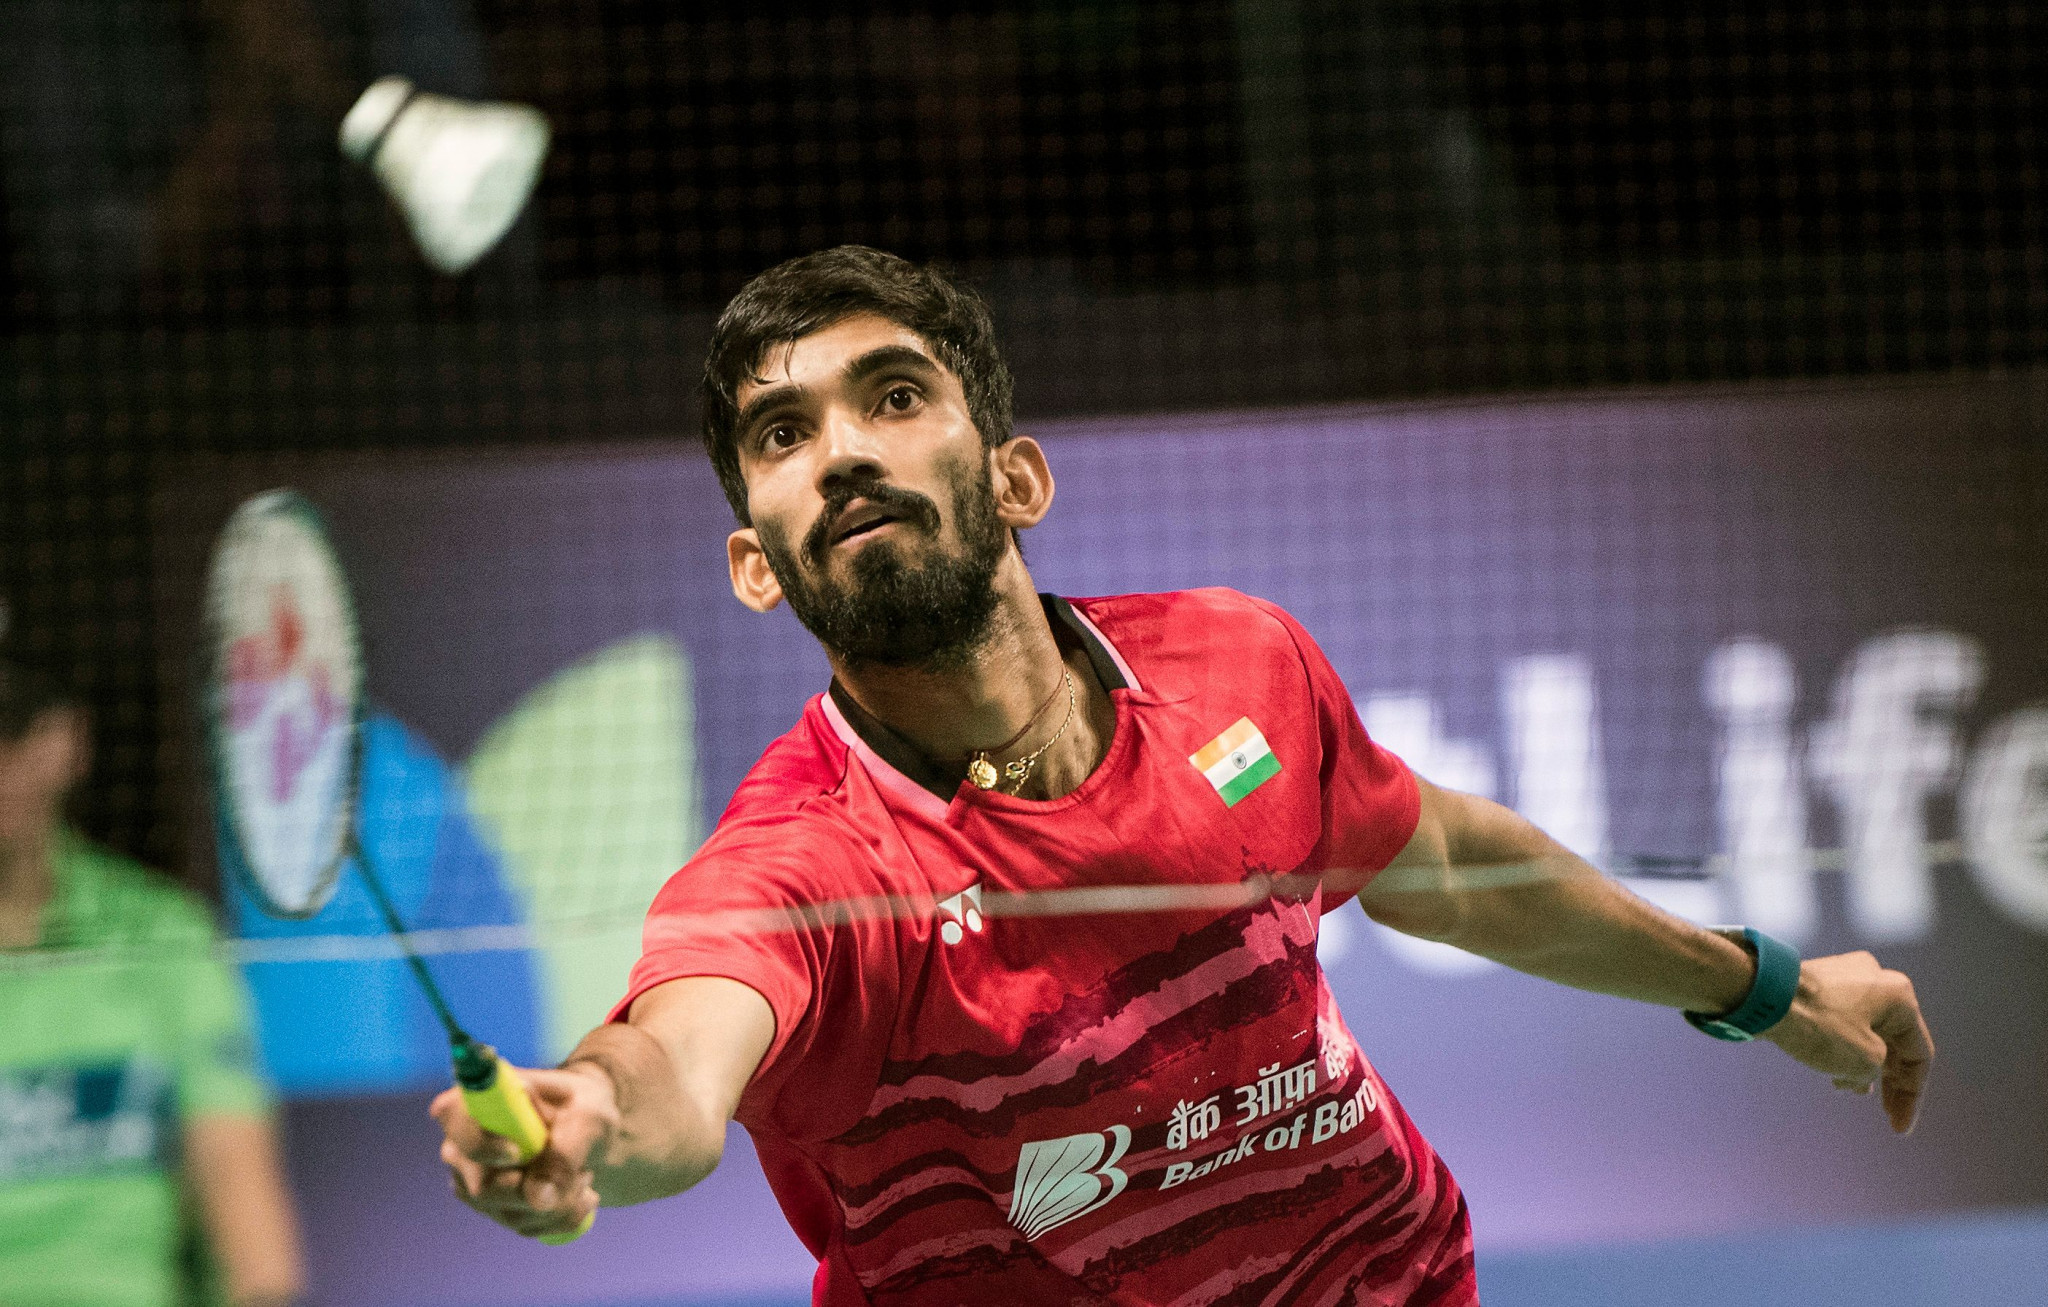 Srikanth and Intanon hoping to carry momentum into BWF French Open